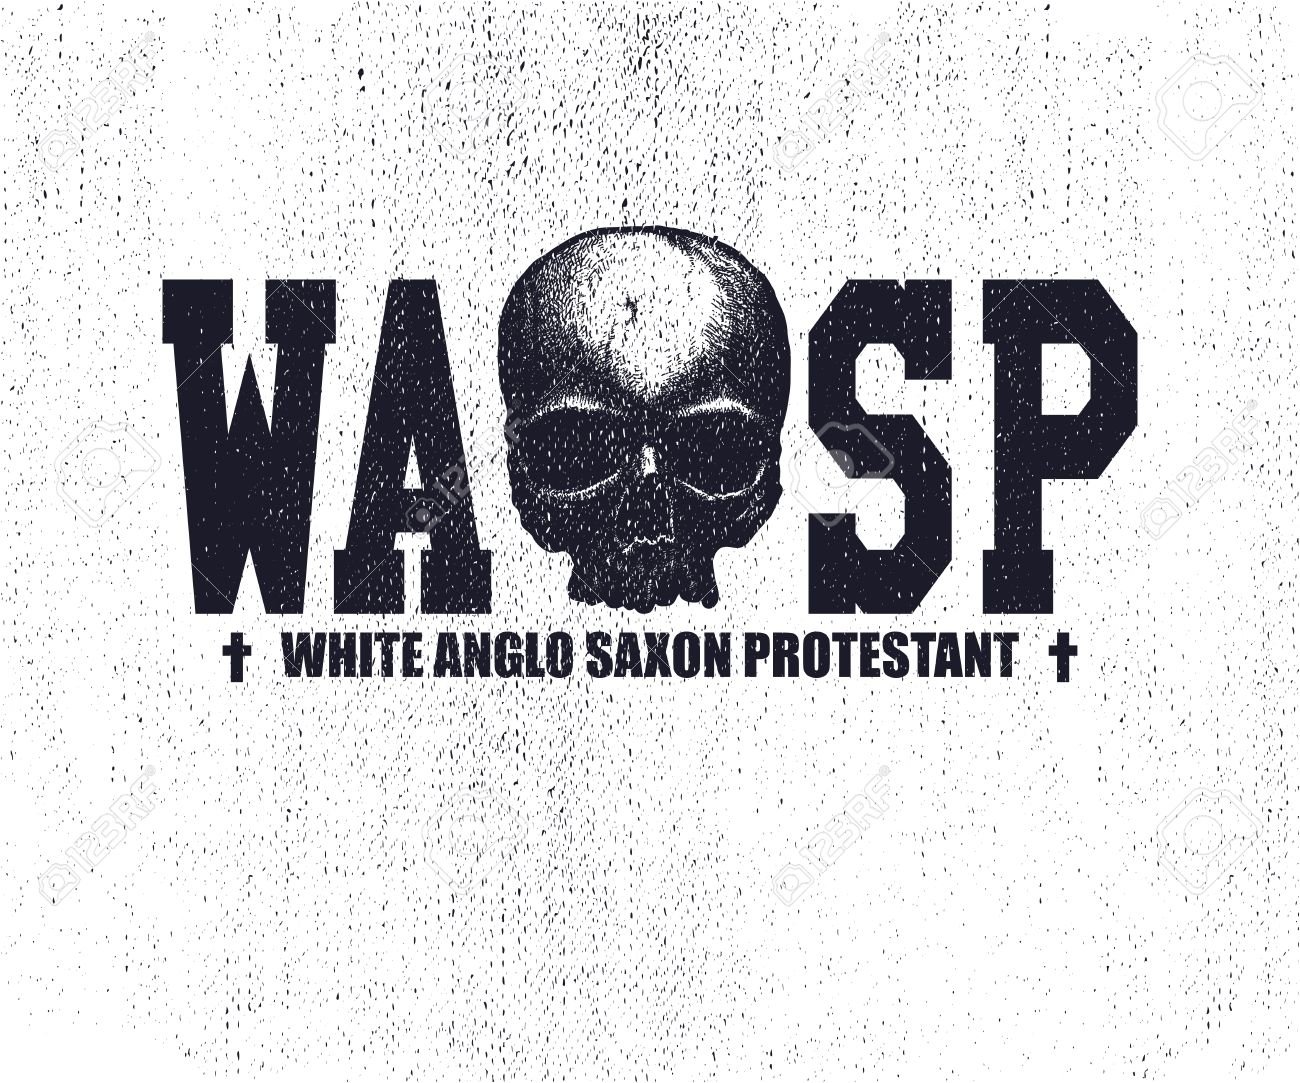 an introduction to the white anglo saxon protestant Va iii introduction va iii purpose rbpb  christian character of white anglo-saxon protestant/baptist george washington  brother chris white.